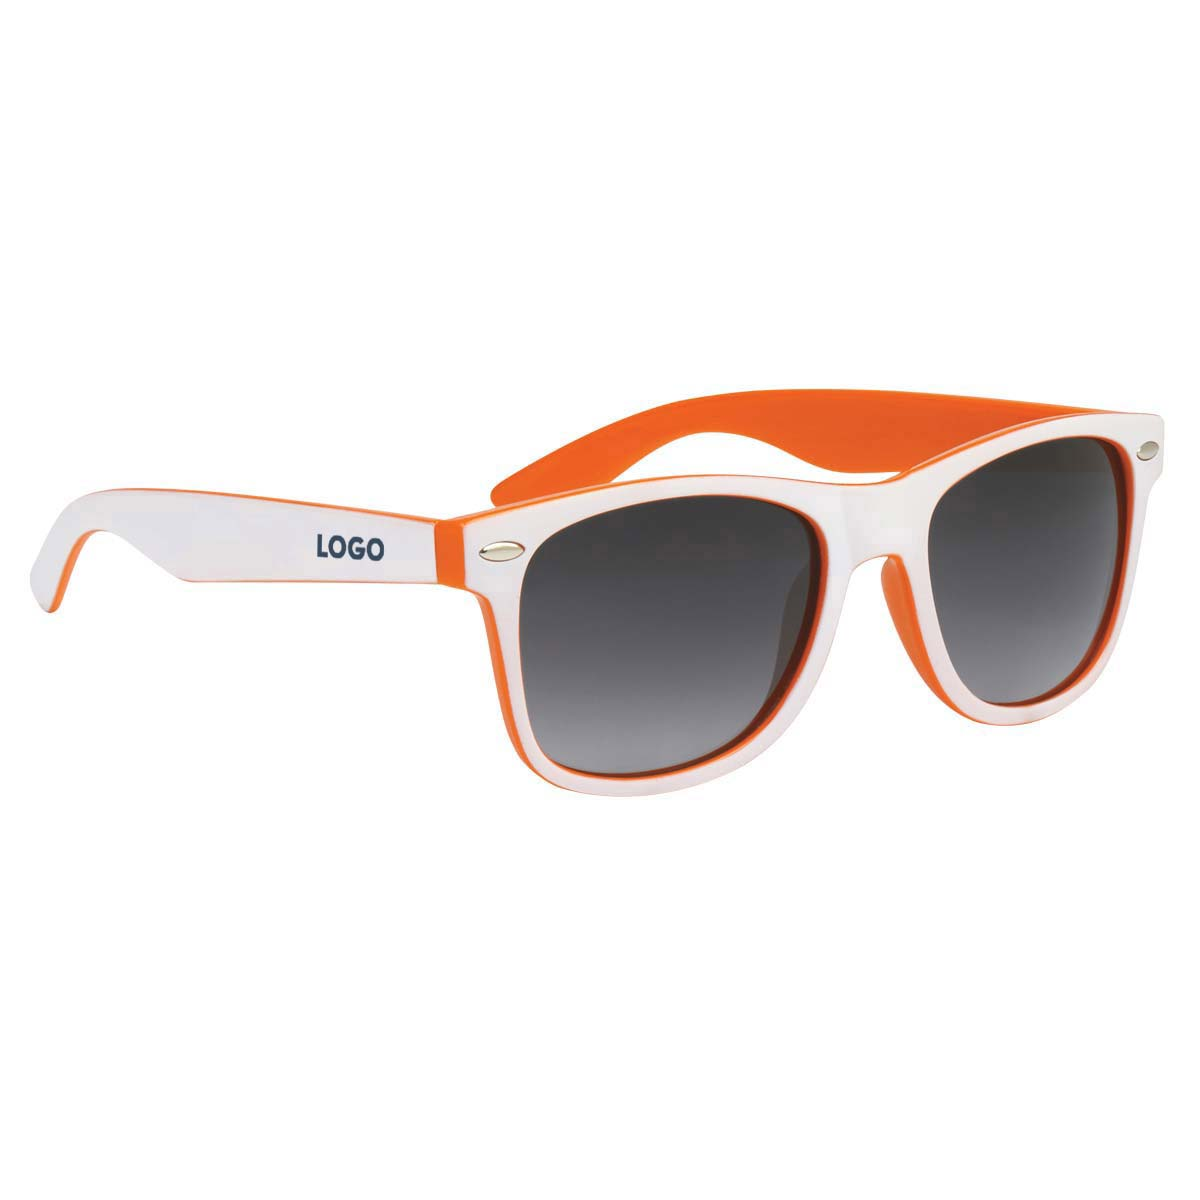 313929 double up sunglasses one location one color imprint